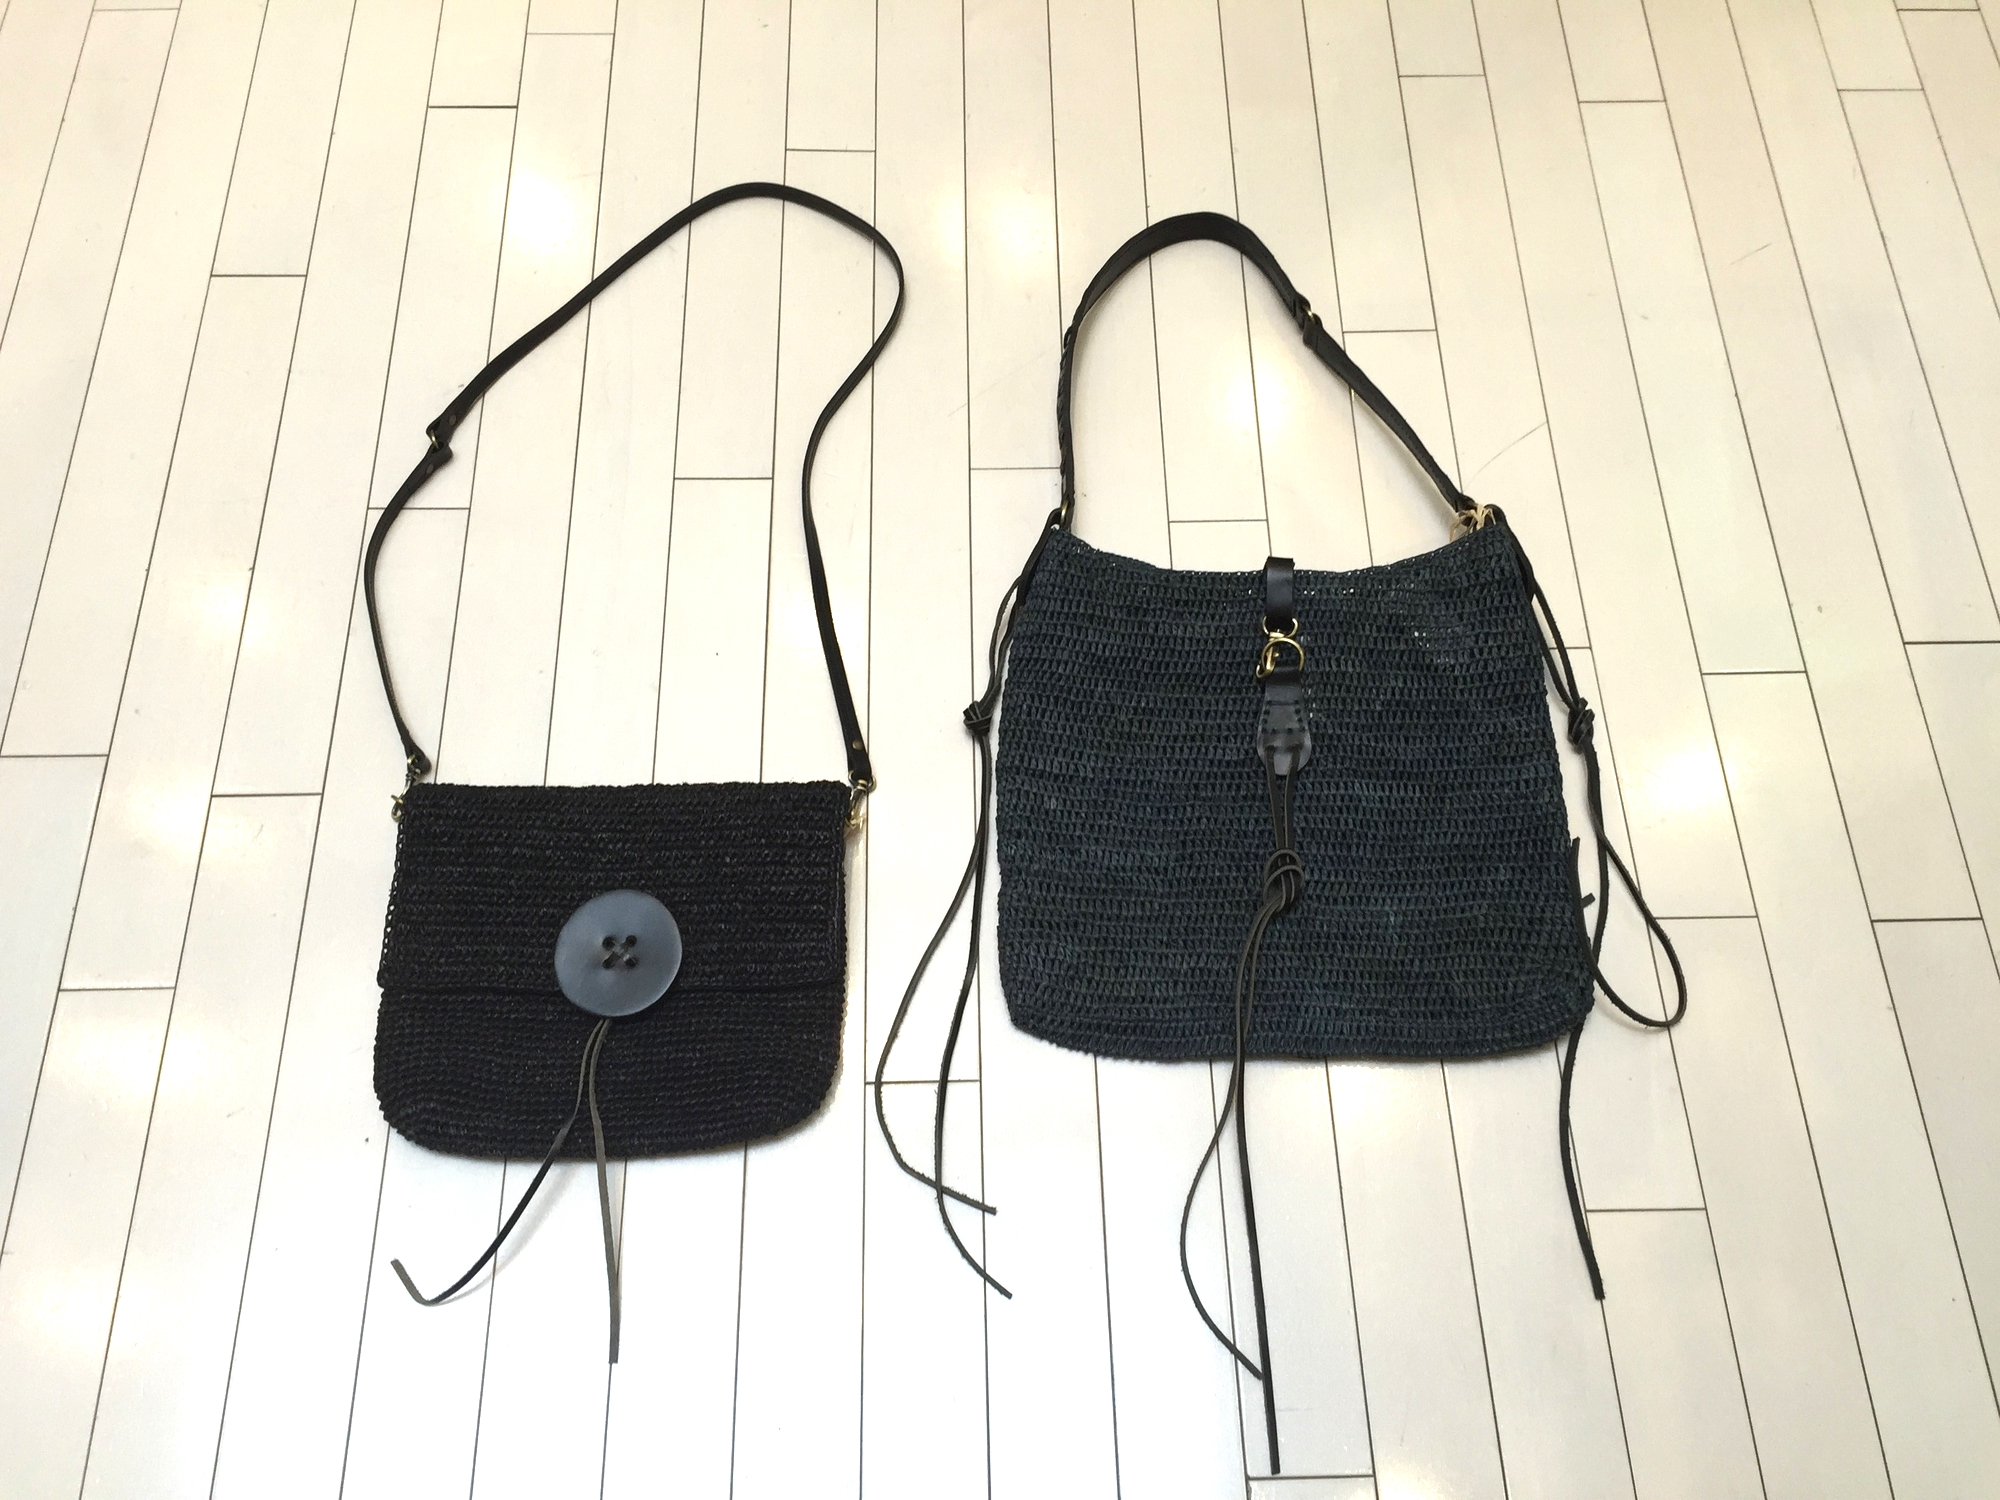 Sans Arcidet Bags at Mercantile.JPG